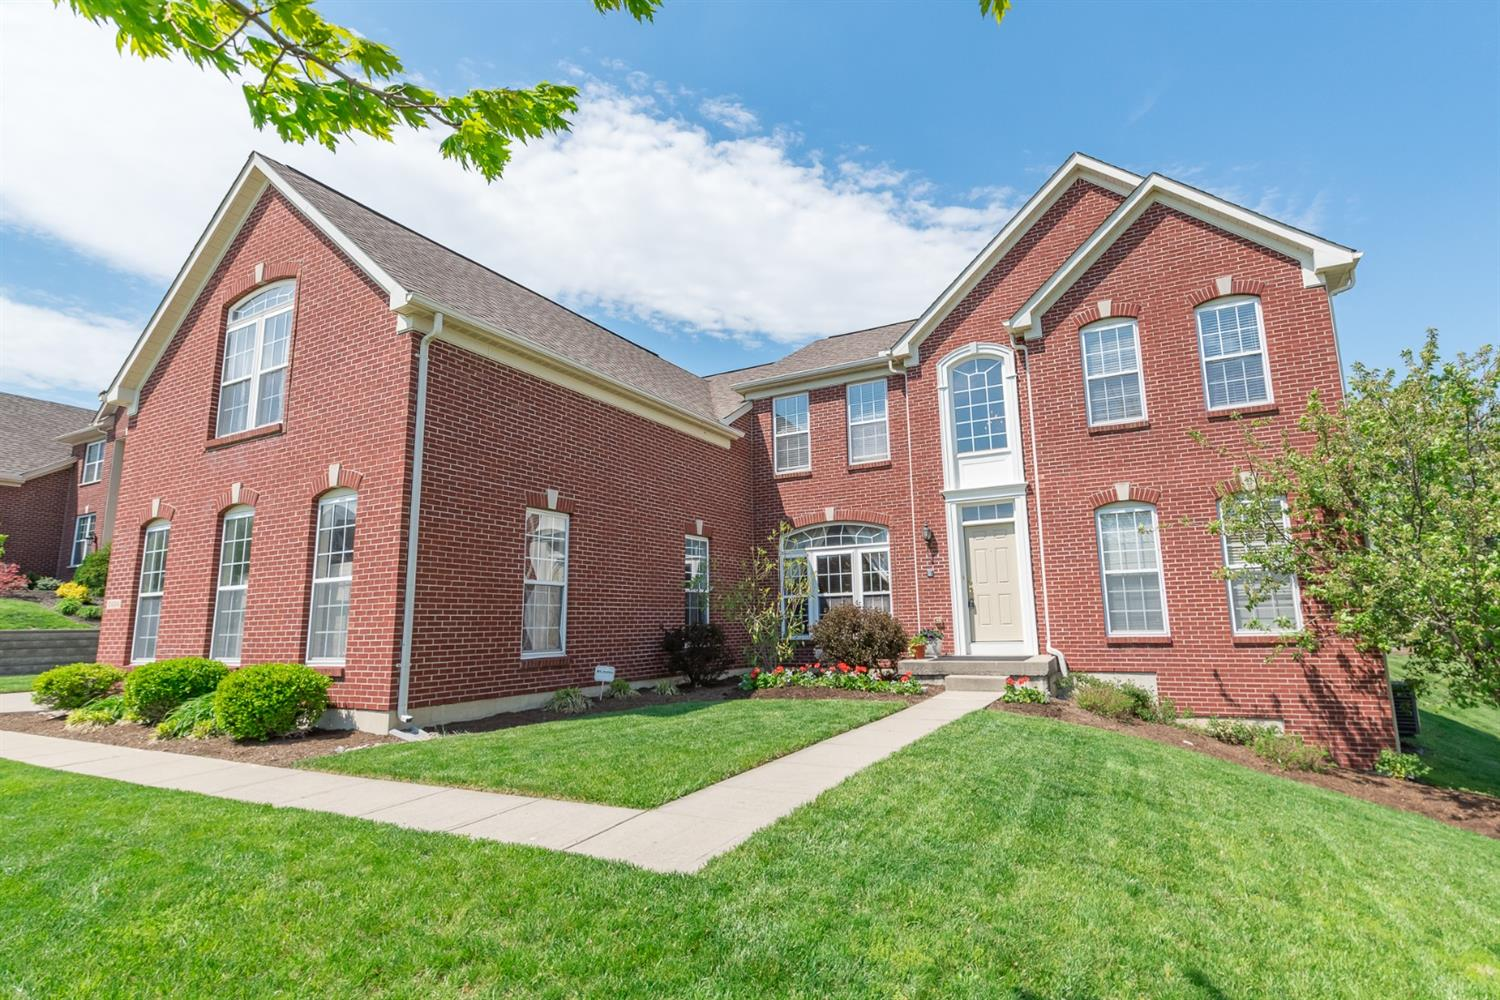 5824 Emerald Lake Dr Fairfield, OH